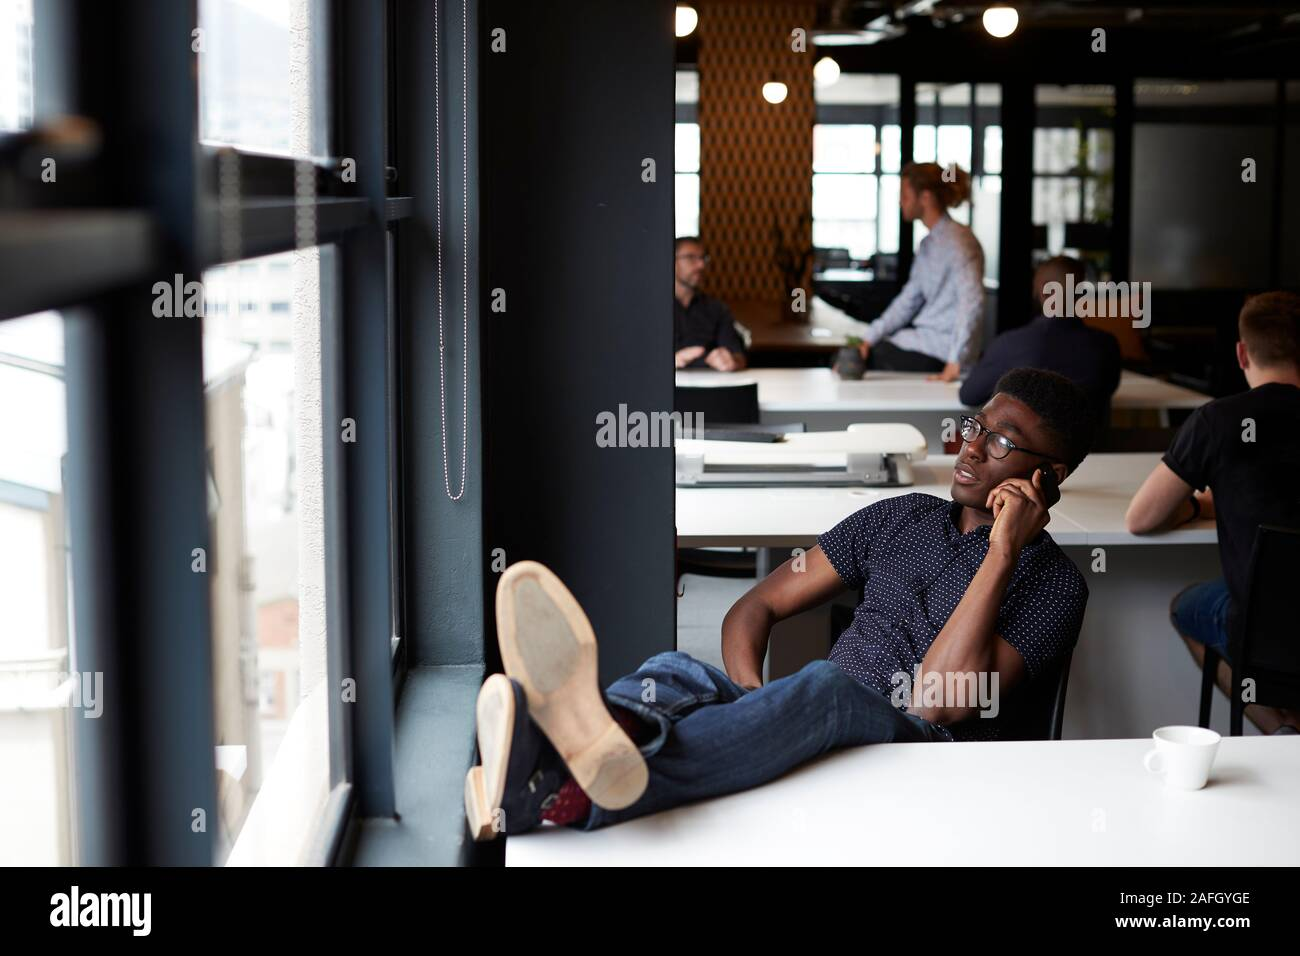 Young black male creative sitting in an office with his feet up on the desk using phone, close up Stock Photo